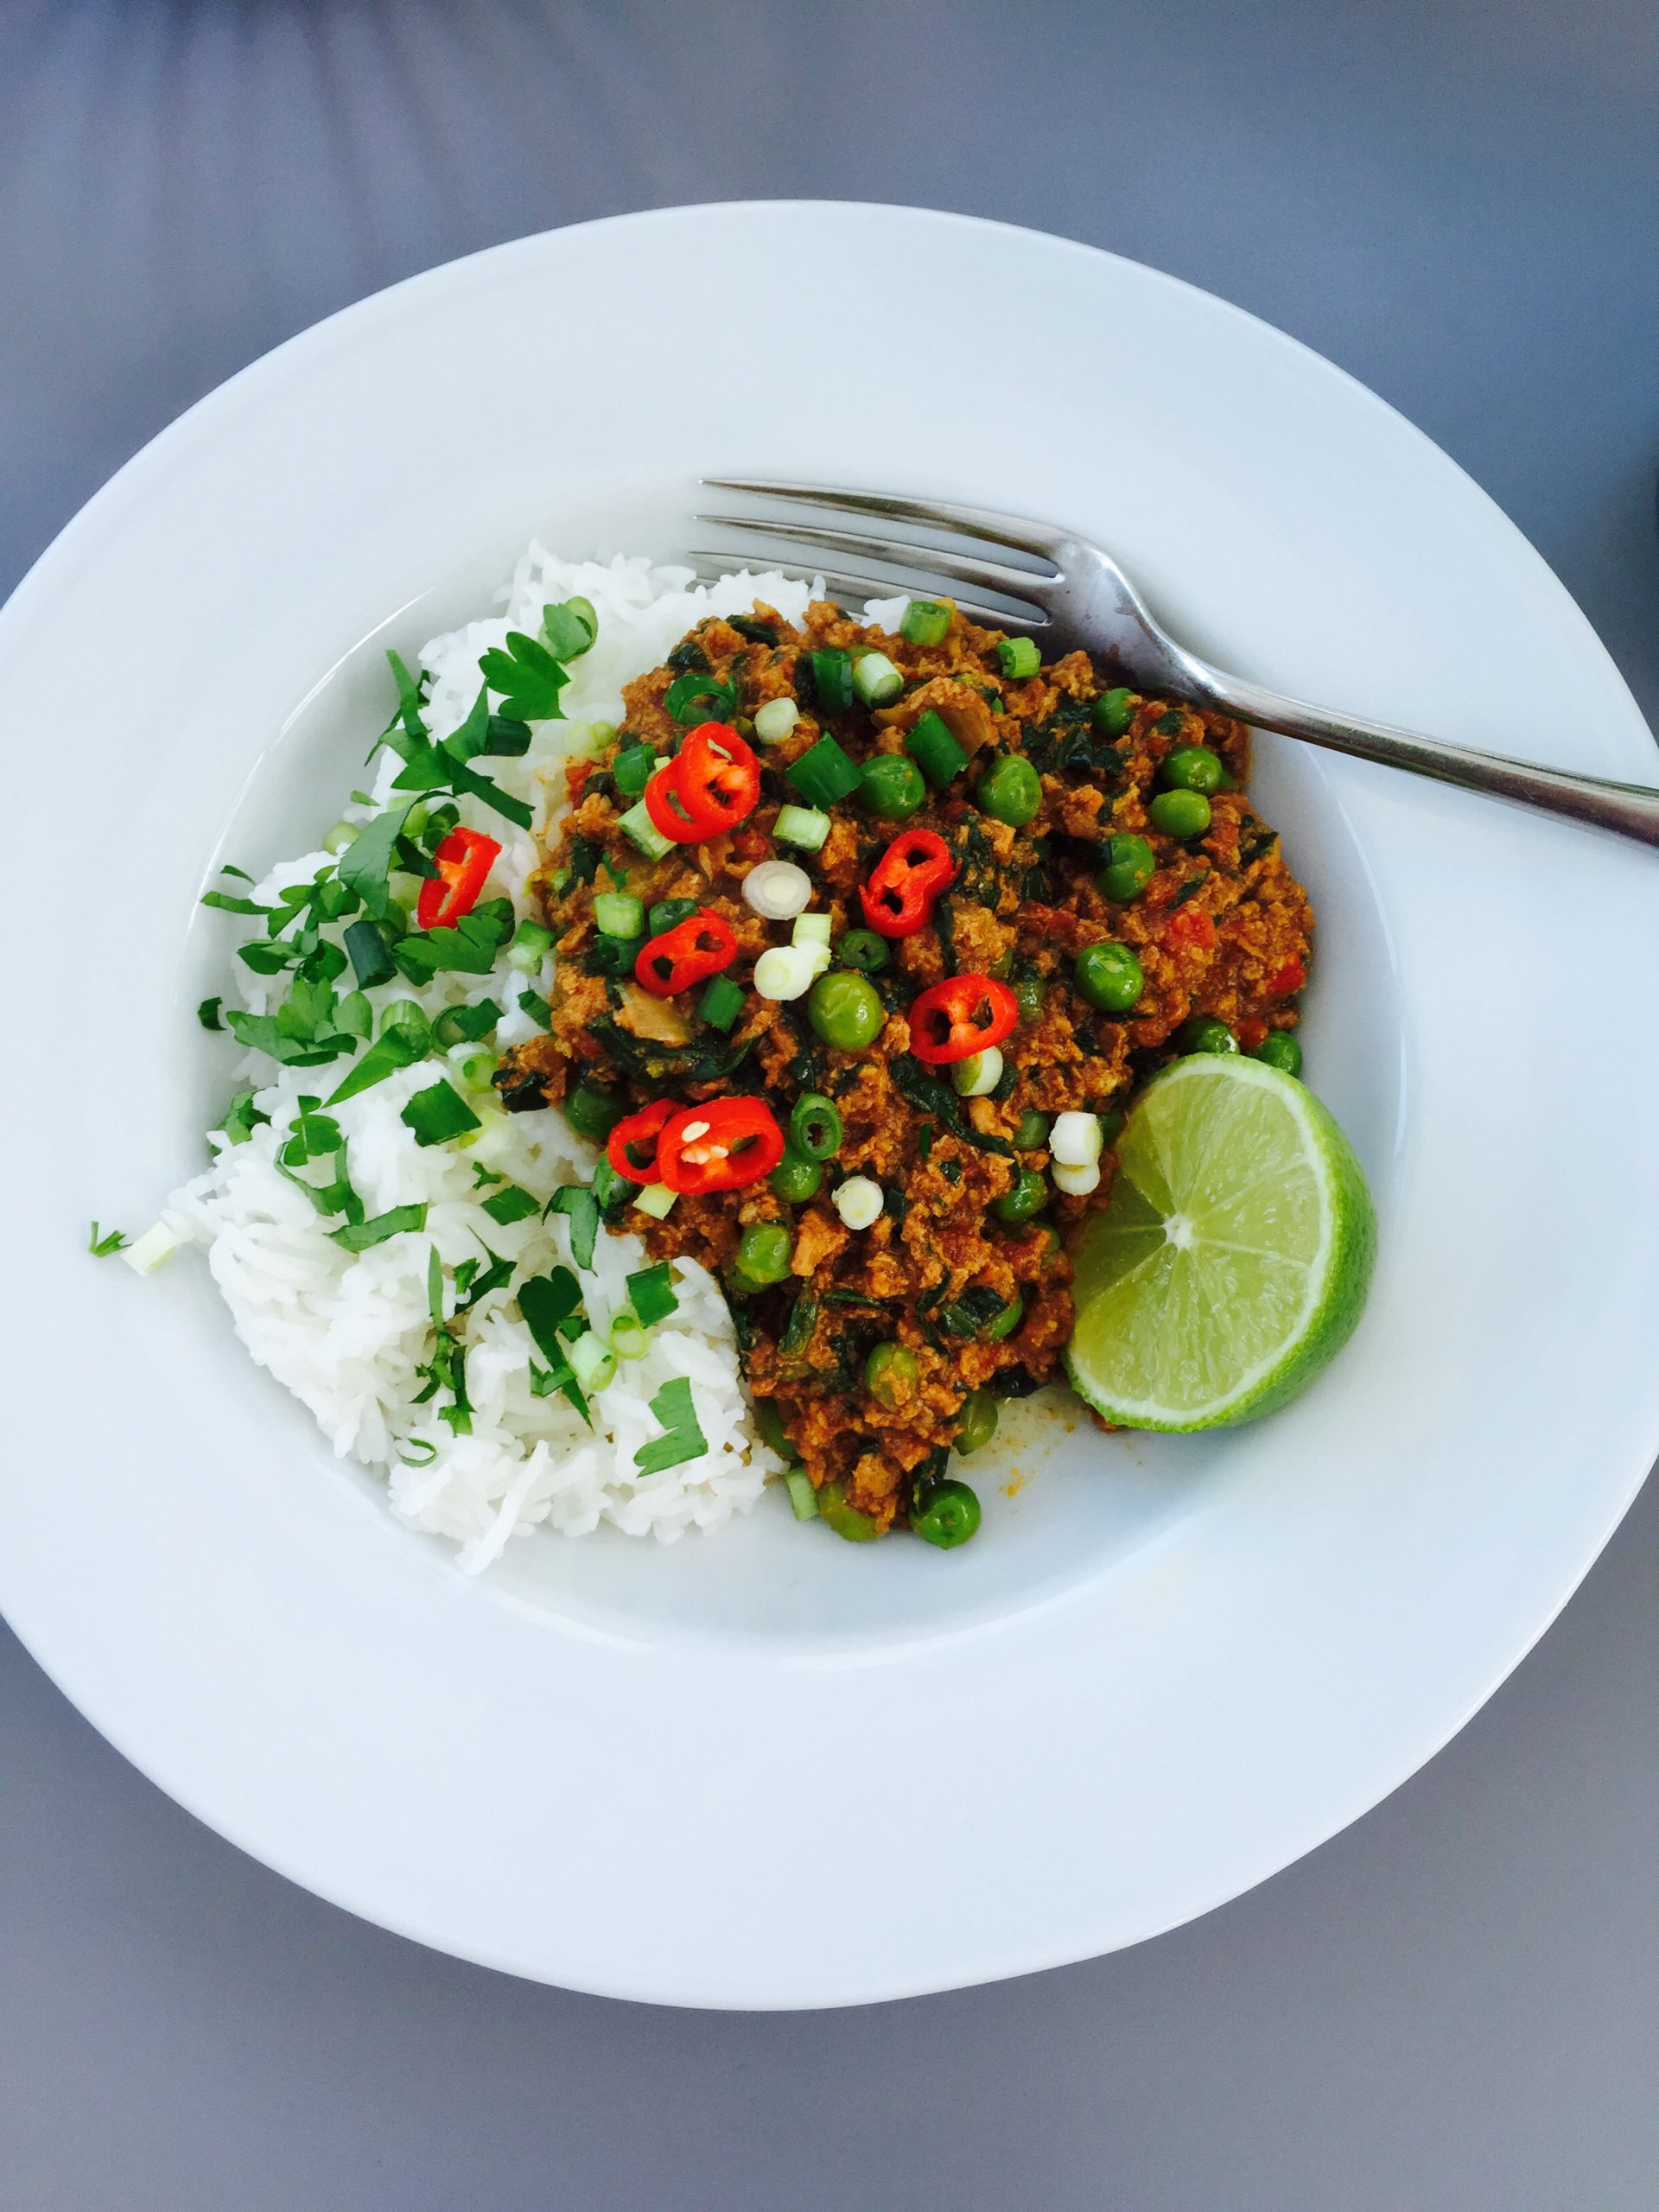 homemade slow cooker turkey keema curry served with plain boiled rice, scattered with chopped coriander and sliced red chillies, lime wedge alongside. Curry served on a white plate sat on a grey table.